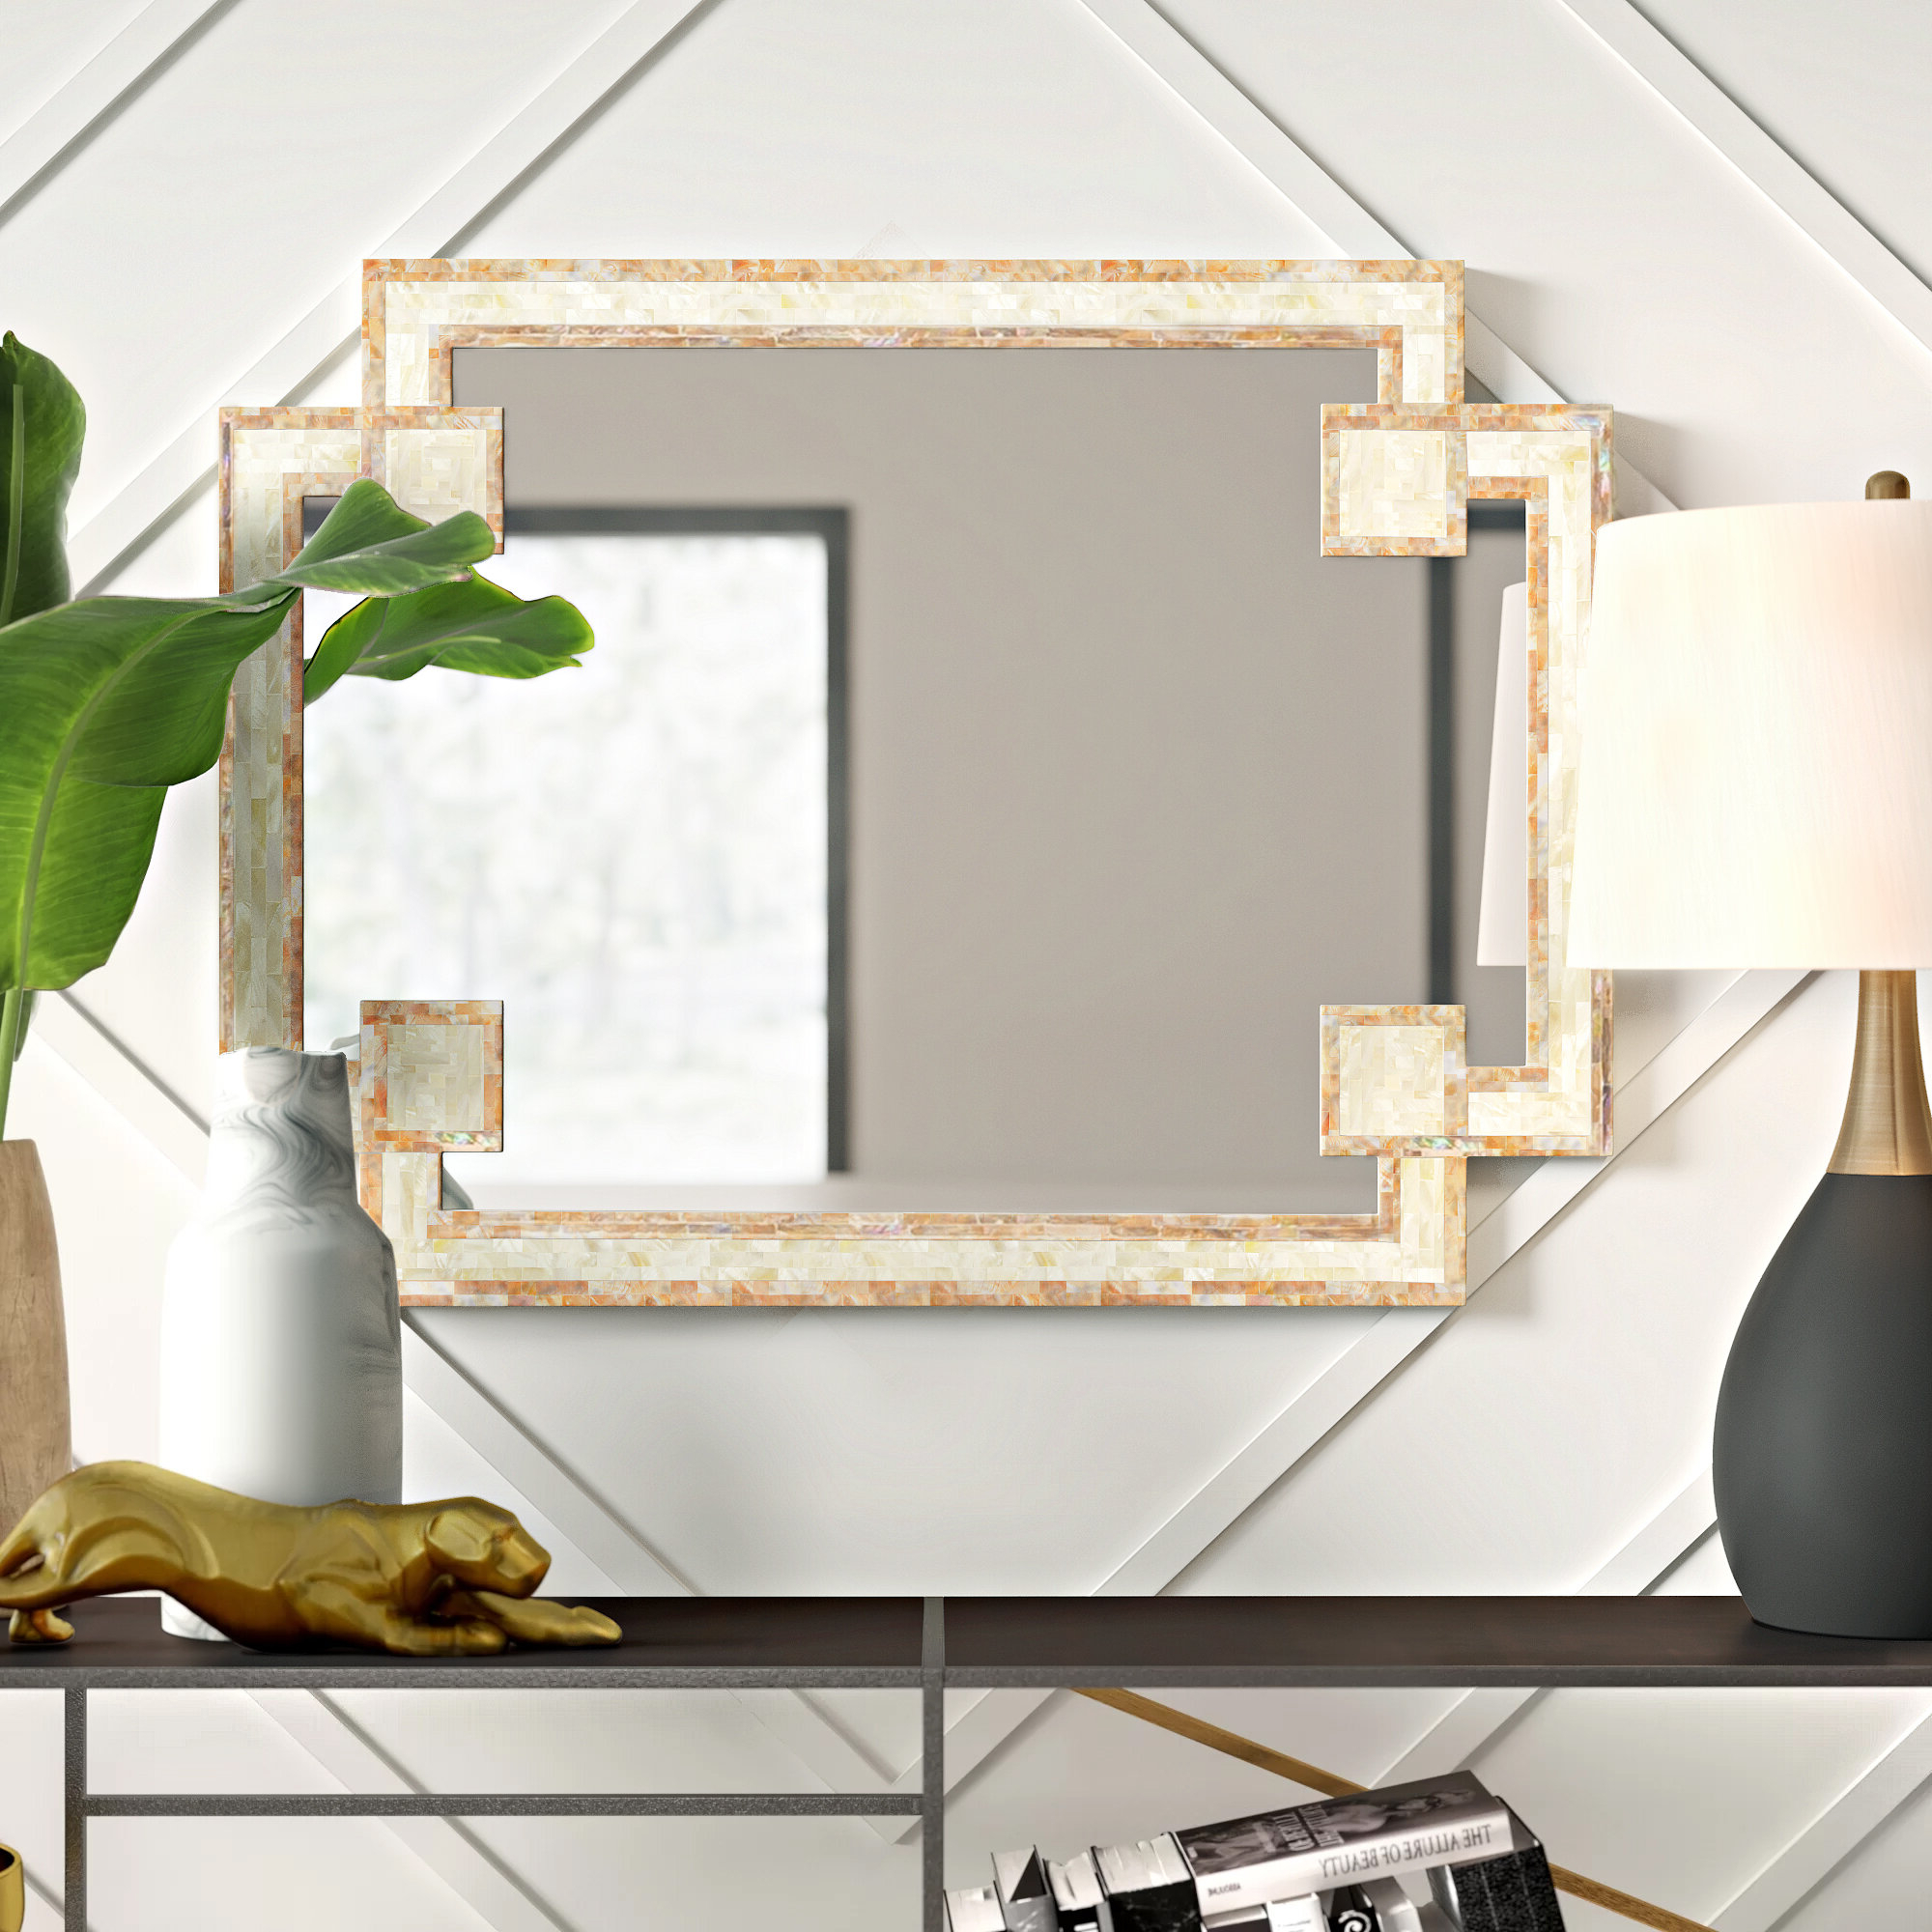 Most Recent Modern Contemporary Wall Mirrors Intended For Latrell Modern & Contemporary Wall Mirror (Gallery 6 of 20)